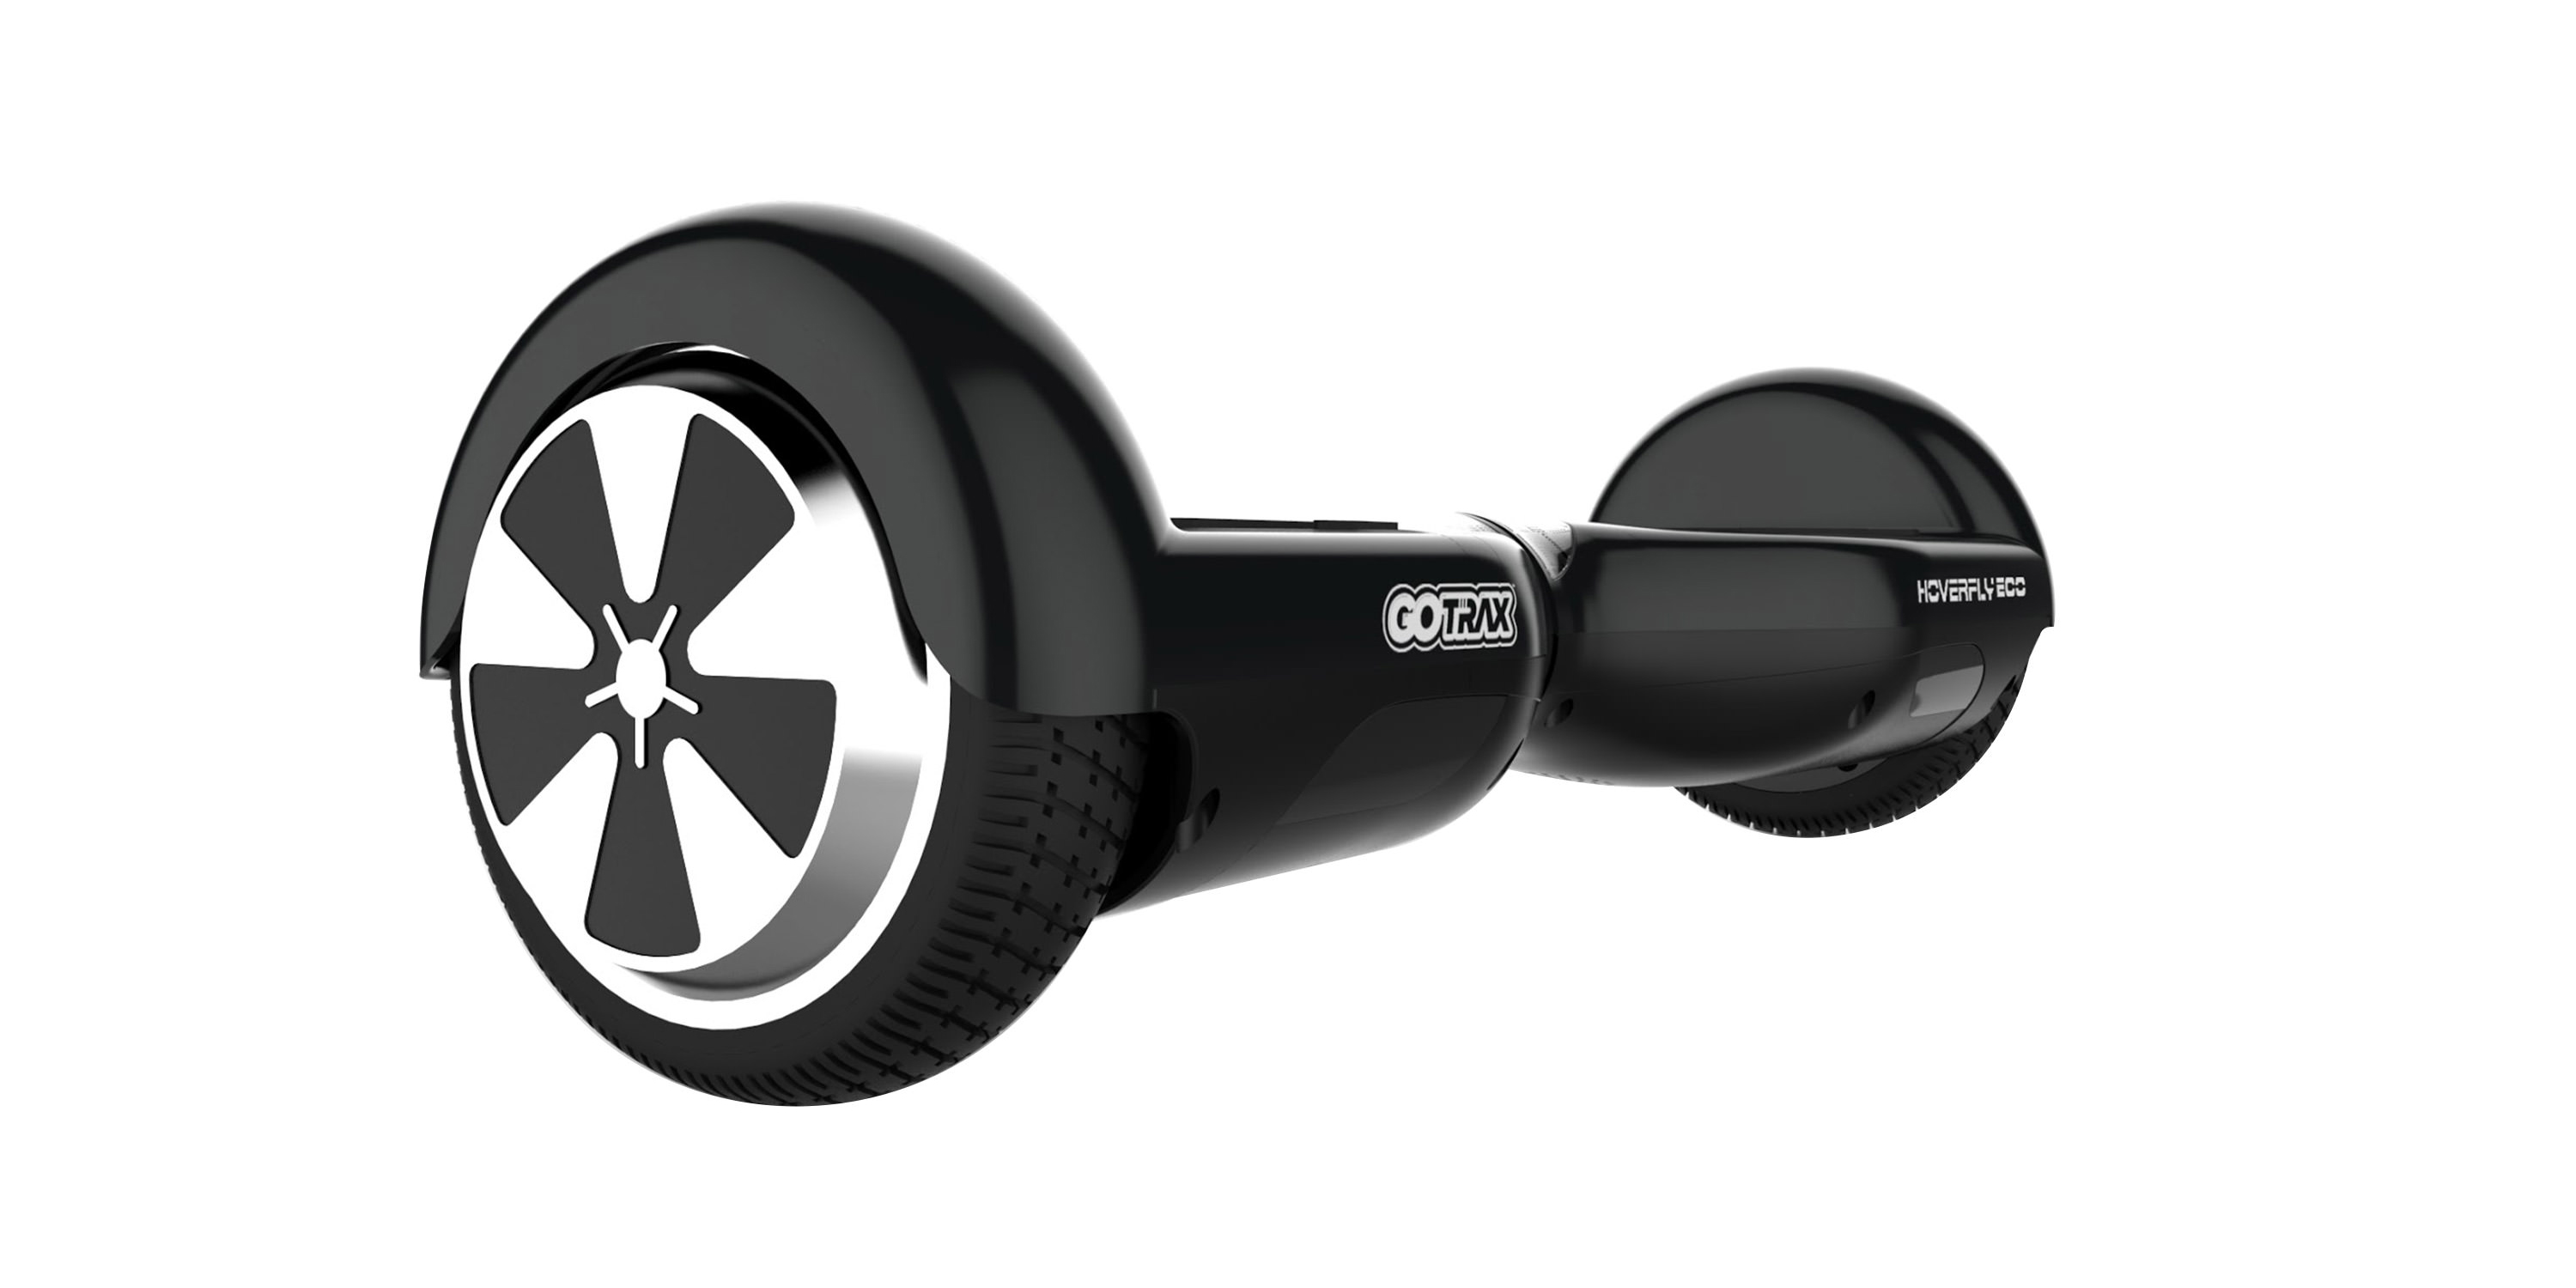 Hover around with the GOTRAX HOVERFLY for $99 shipped (Reg. $130)